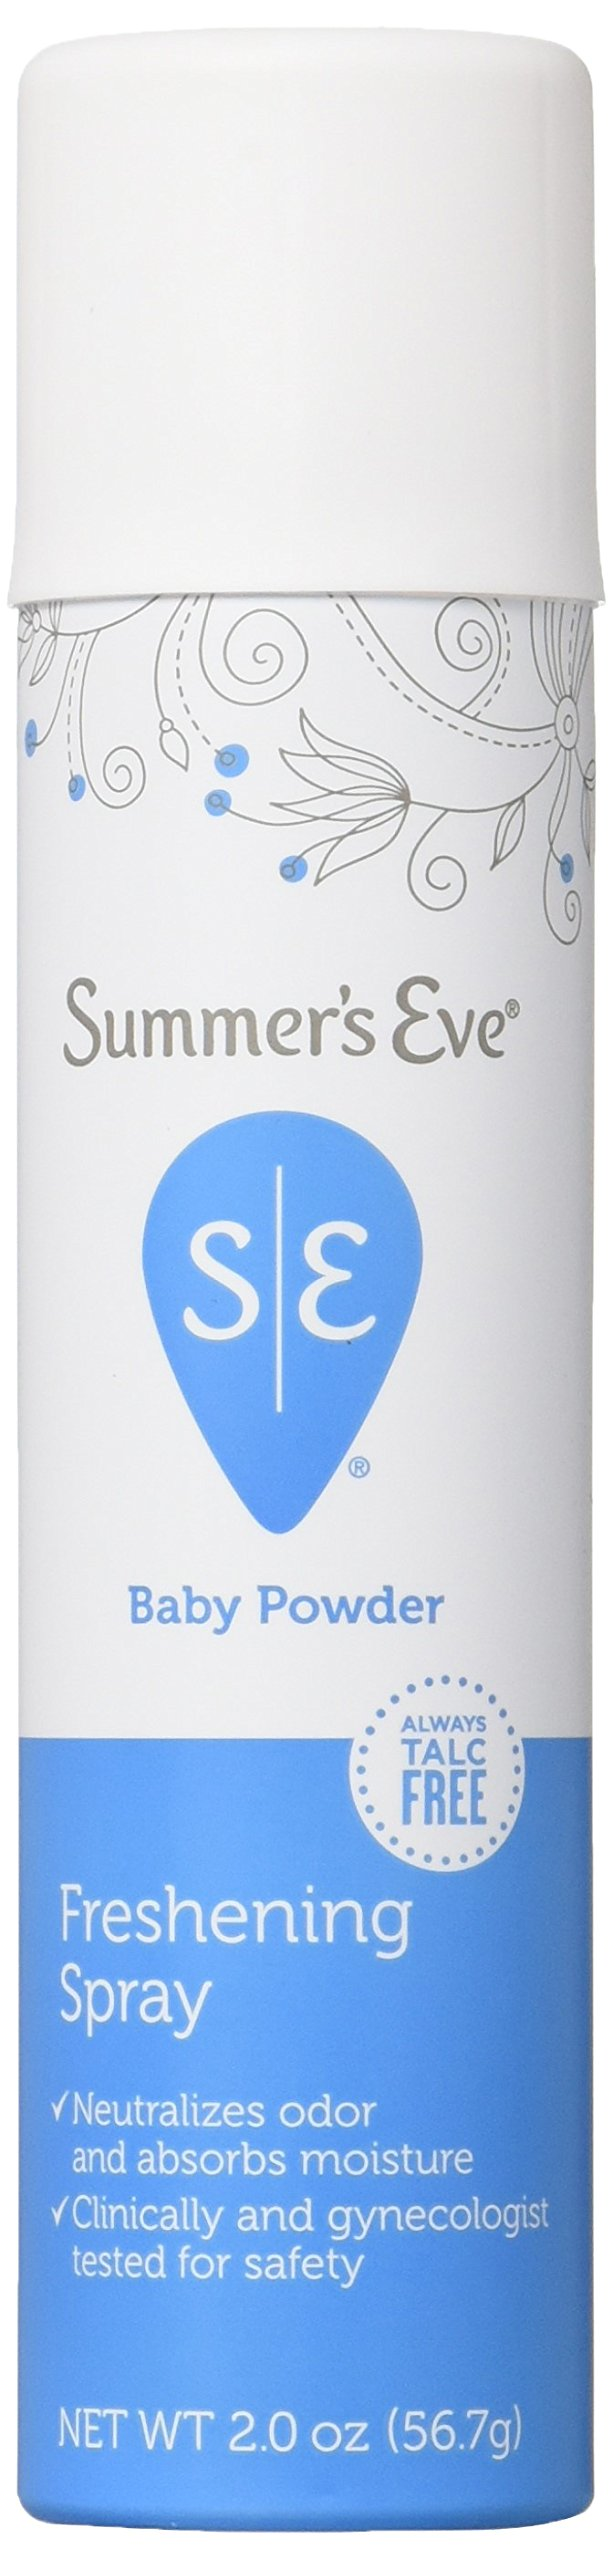 Summer's Eve Freshening Spray, Baby Powder, Gynecologist Tested, 2 Ounces Cans, Casepack of 24 Cans-Packaging May Vary